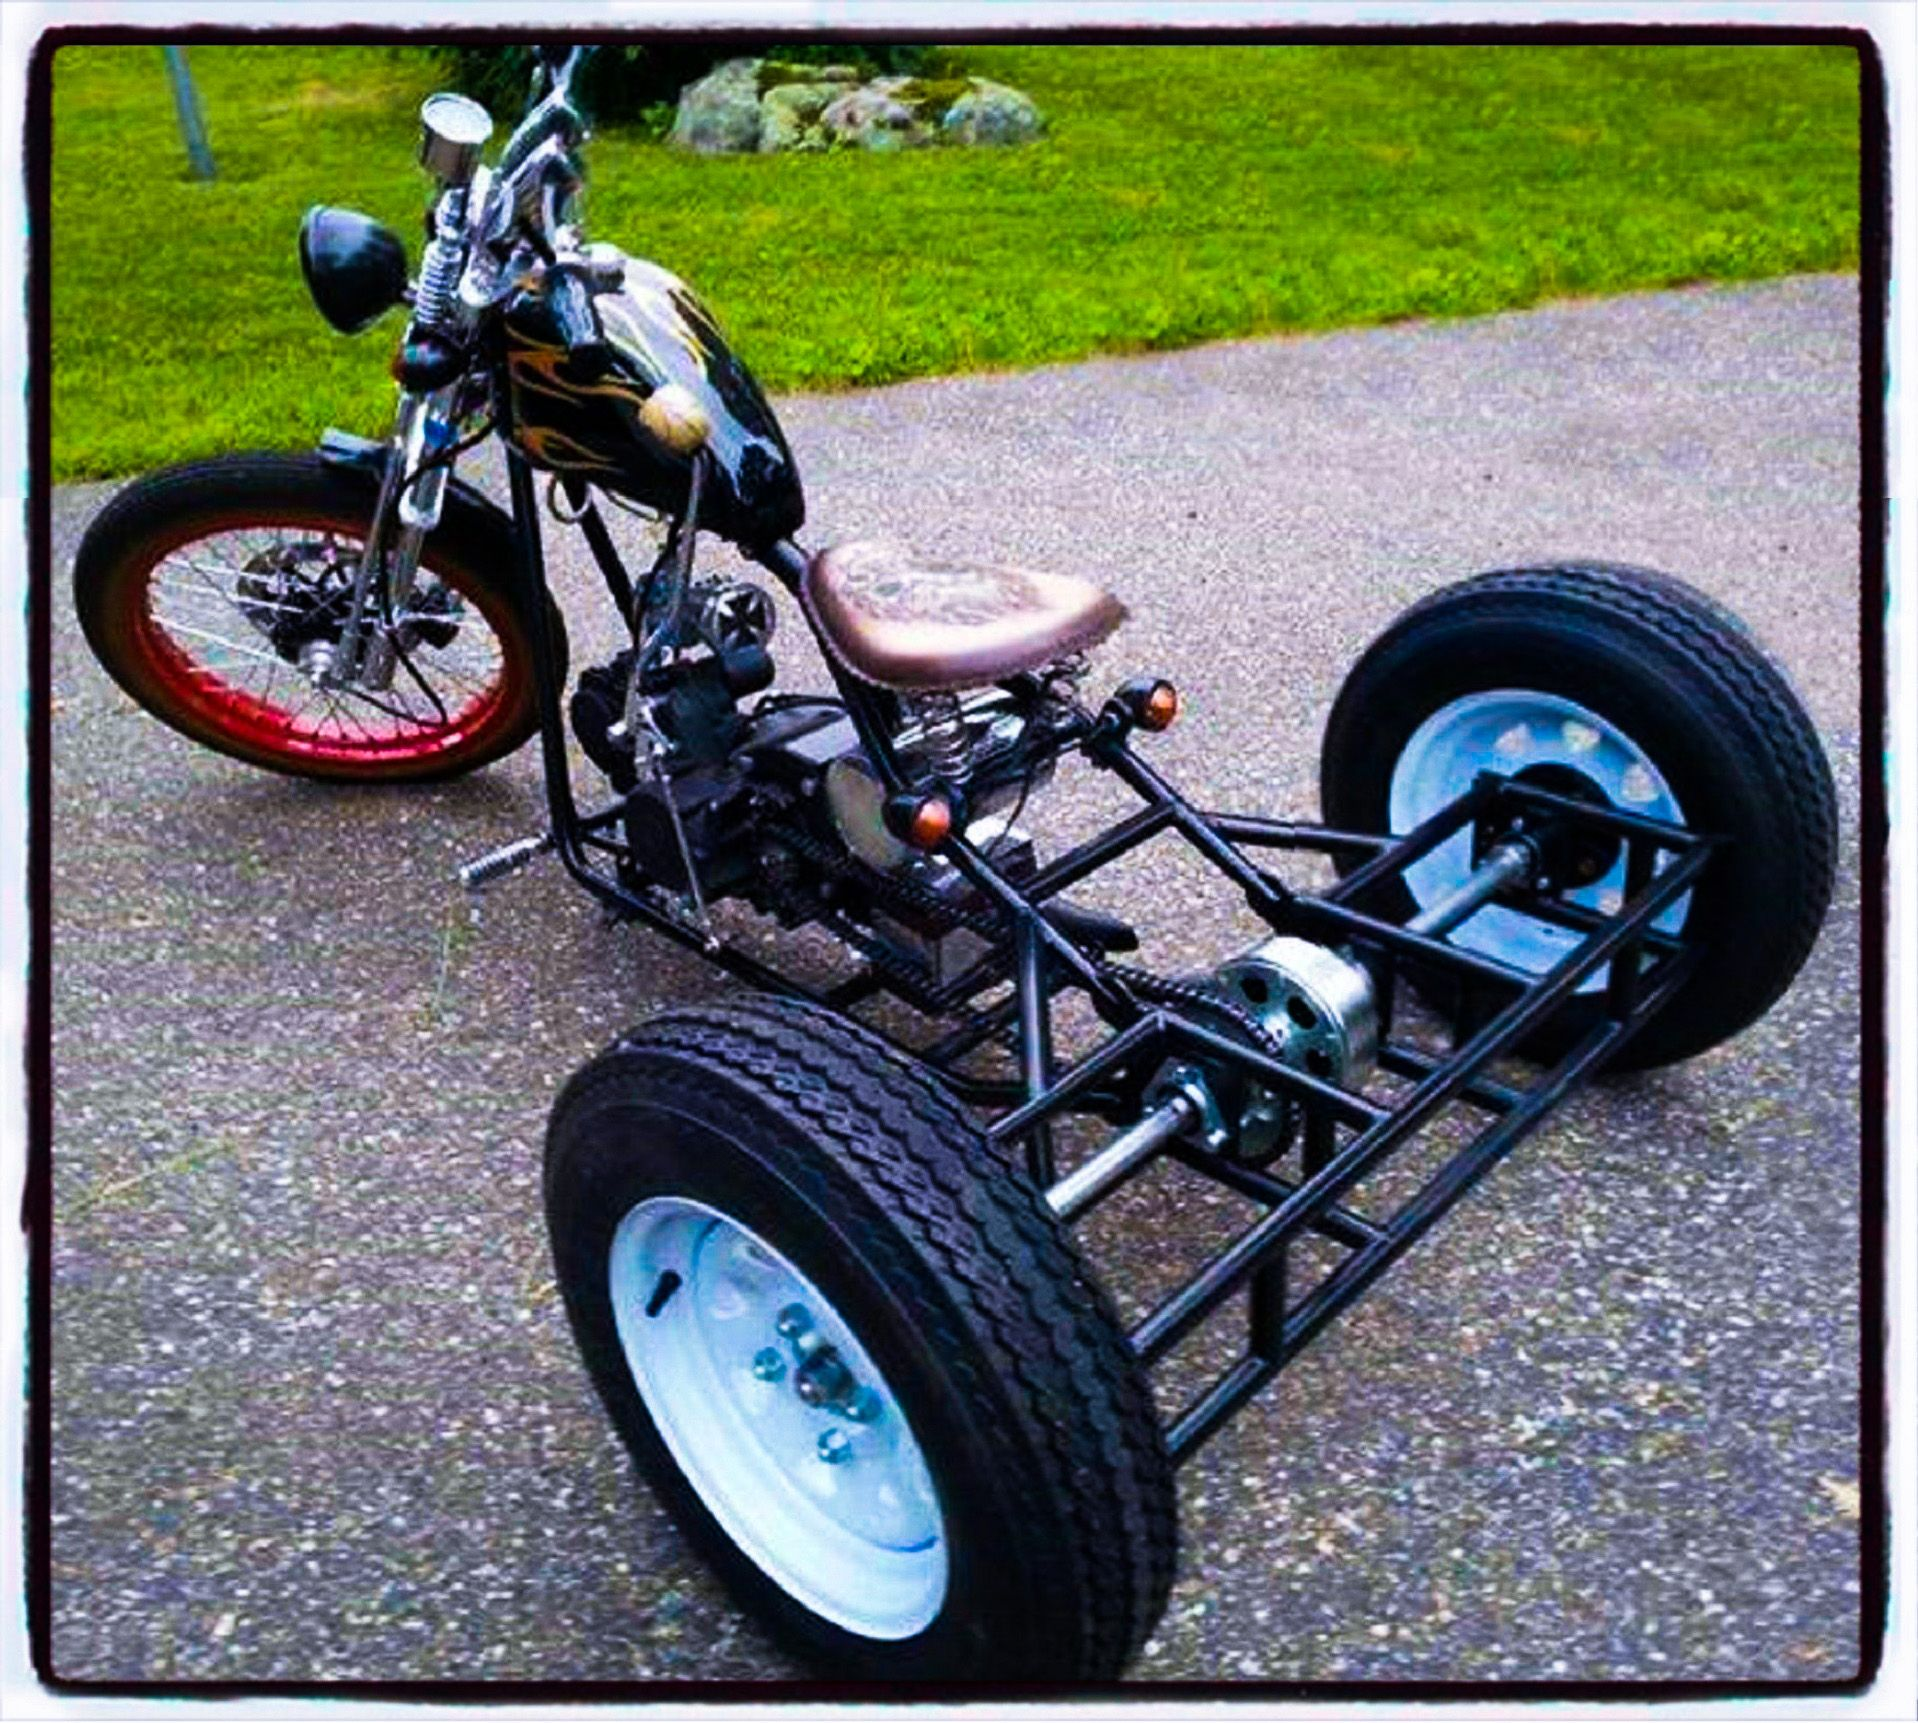 bobber trike this cool bikes the rules hk i kikker 5150 hardknock bobber a trike conversion